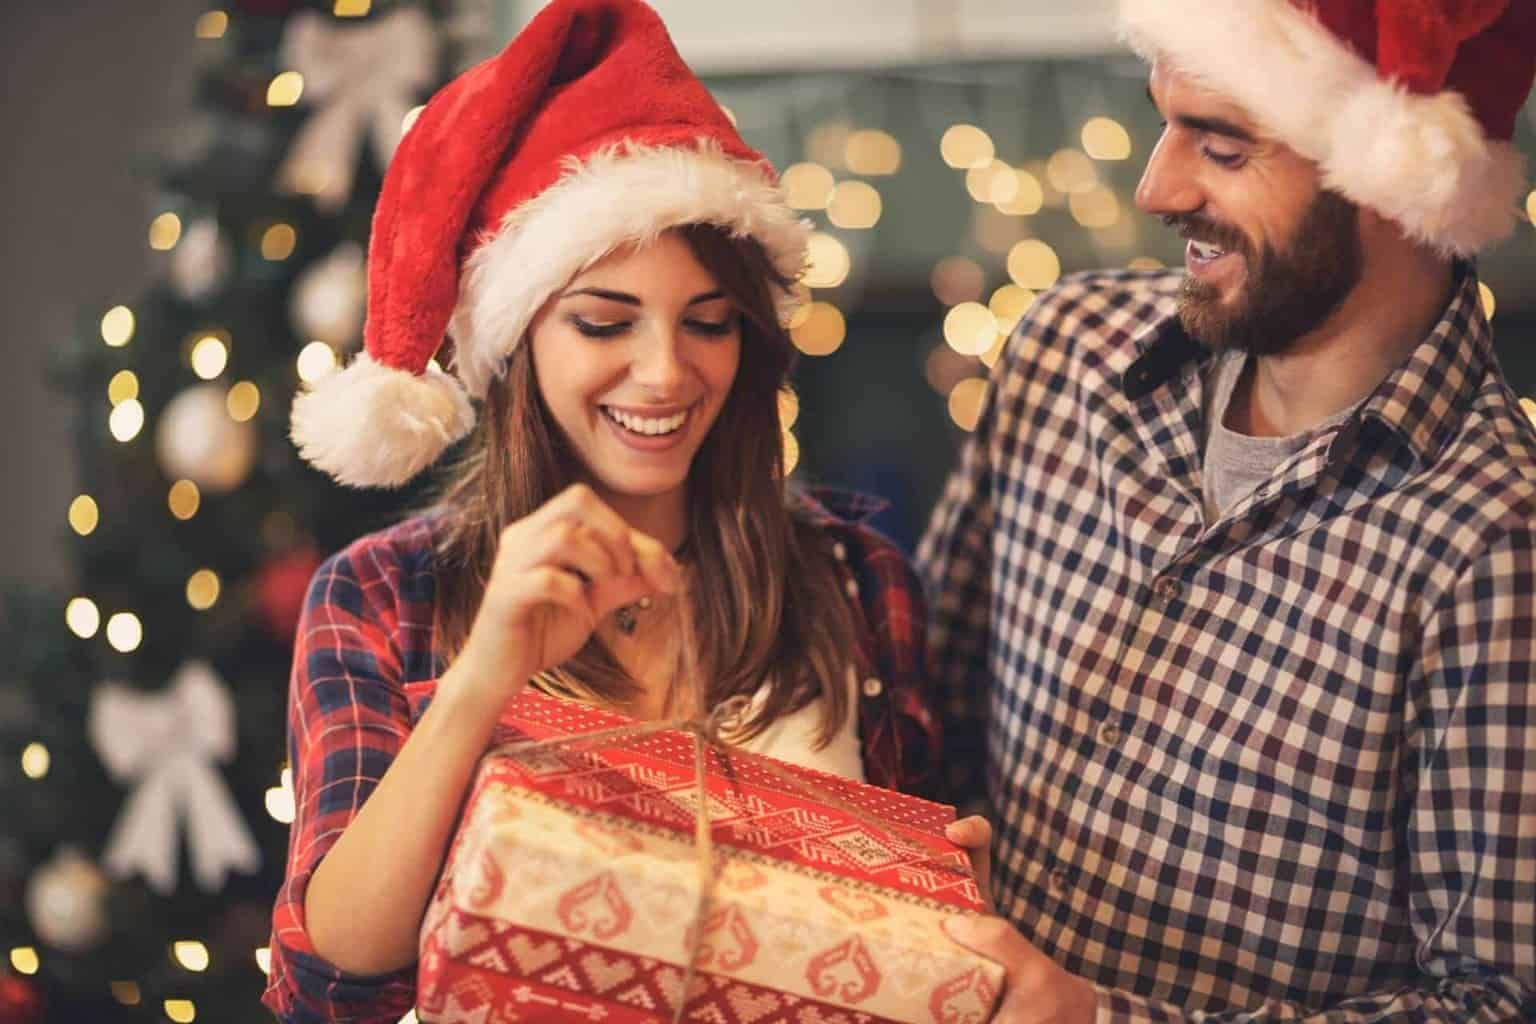 382500e7f0f12 42 Christmas Gifts For Girlfriend - List of awesome gifts she'll love.